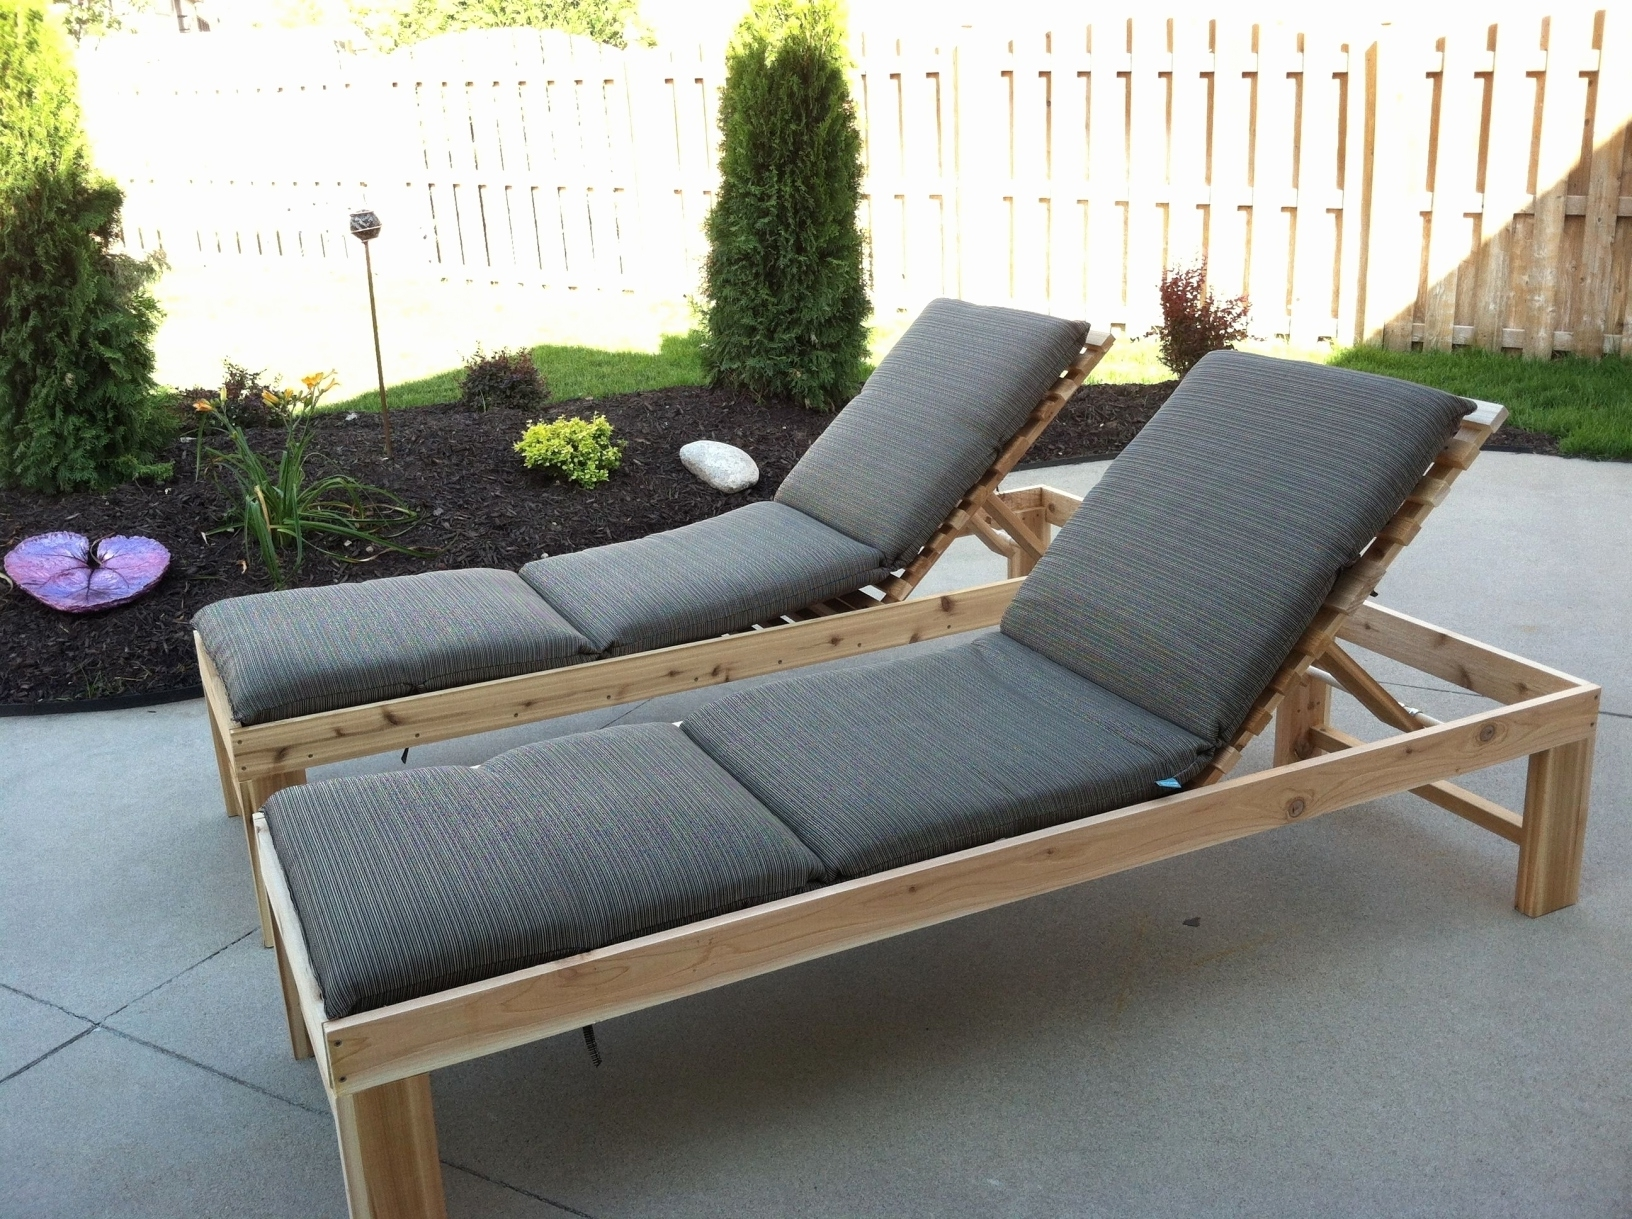 Beach Chaise Lounge Chairs Amazing Diy Chaise Lounge Diy Outdoor In Well Known Diy Chaise Lounge Chairs (View 1 of 15)